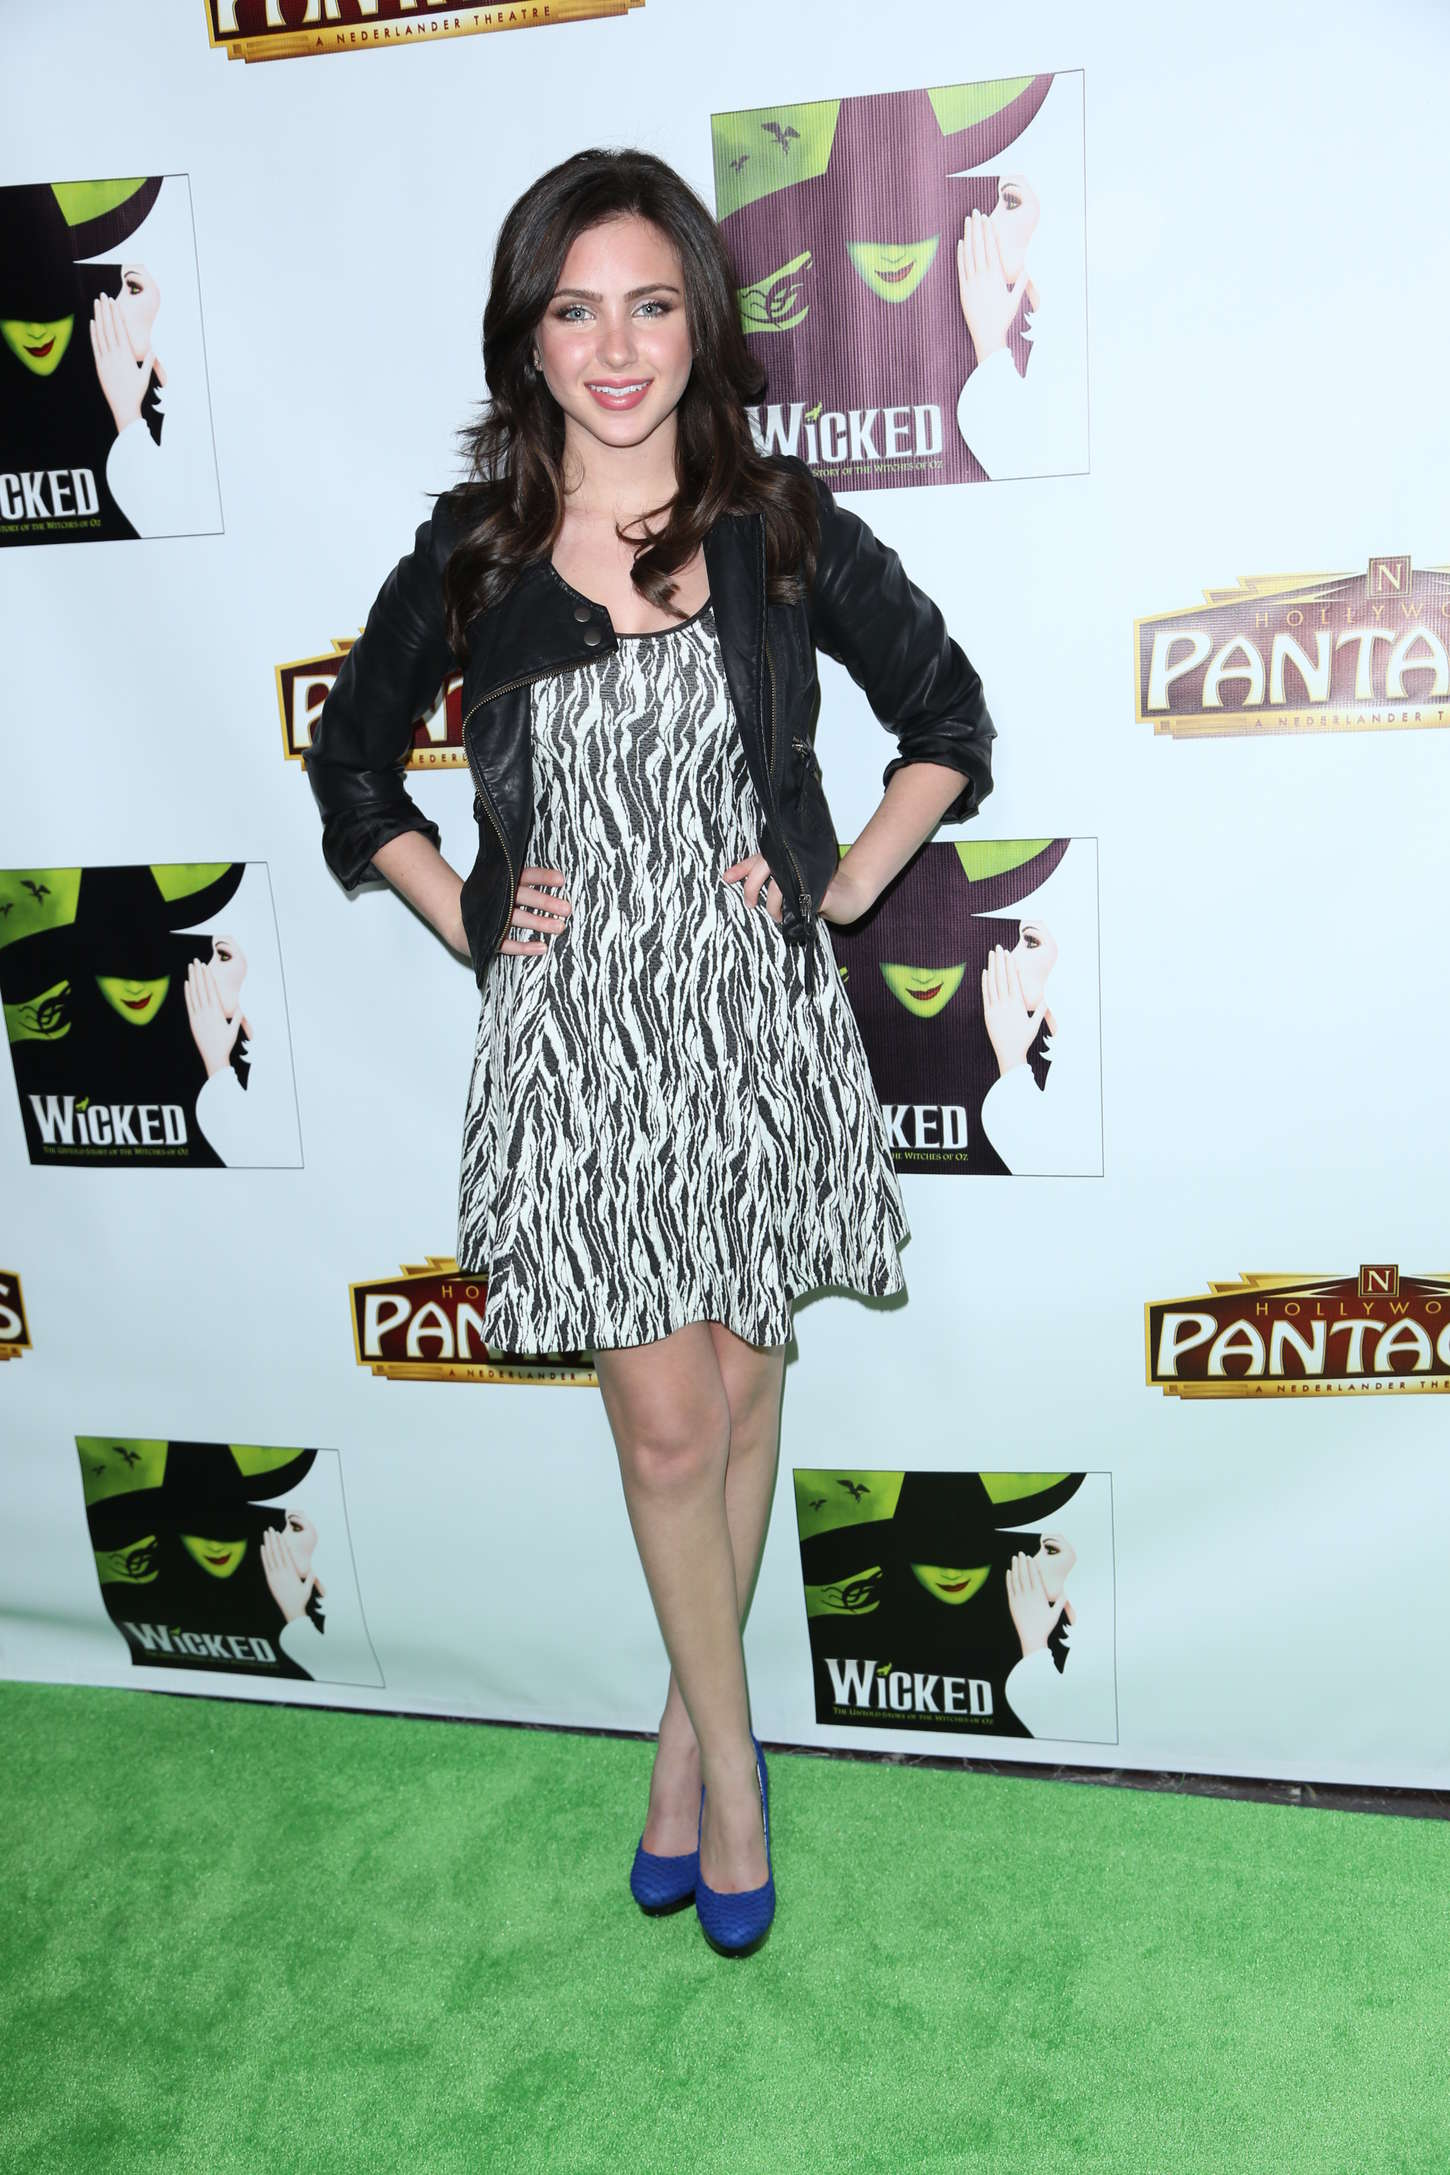 Ryan Newman Wicked Opening Night in Hollywood